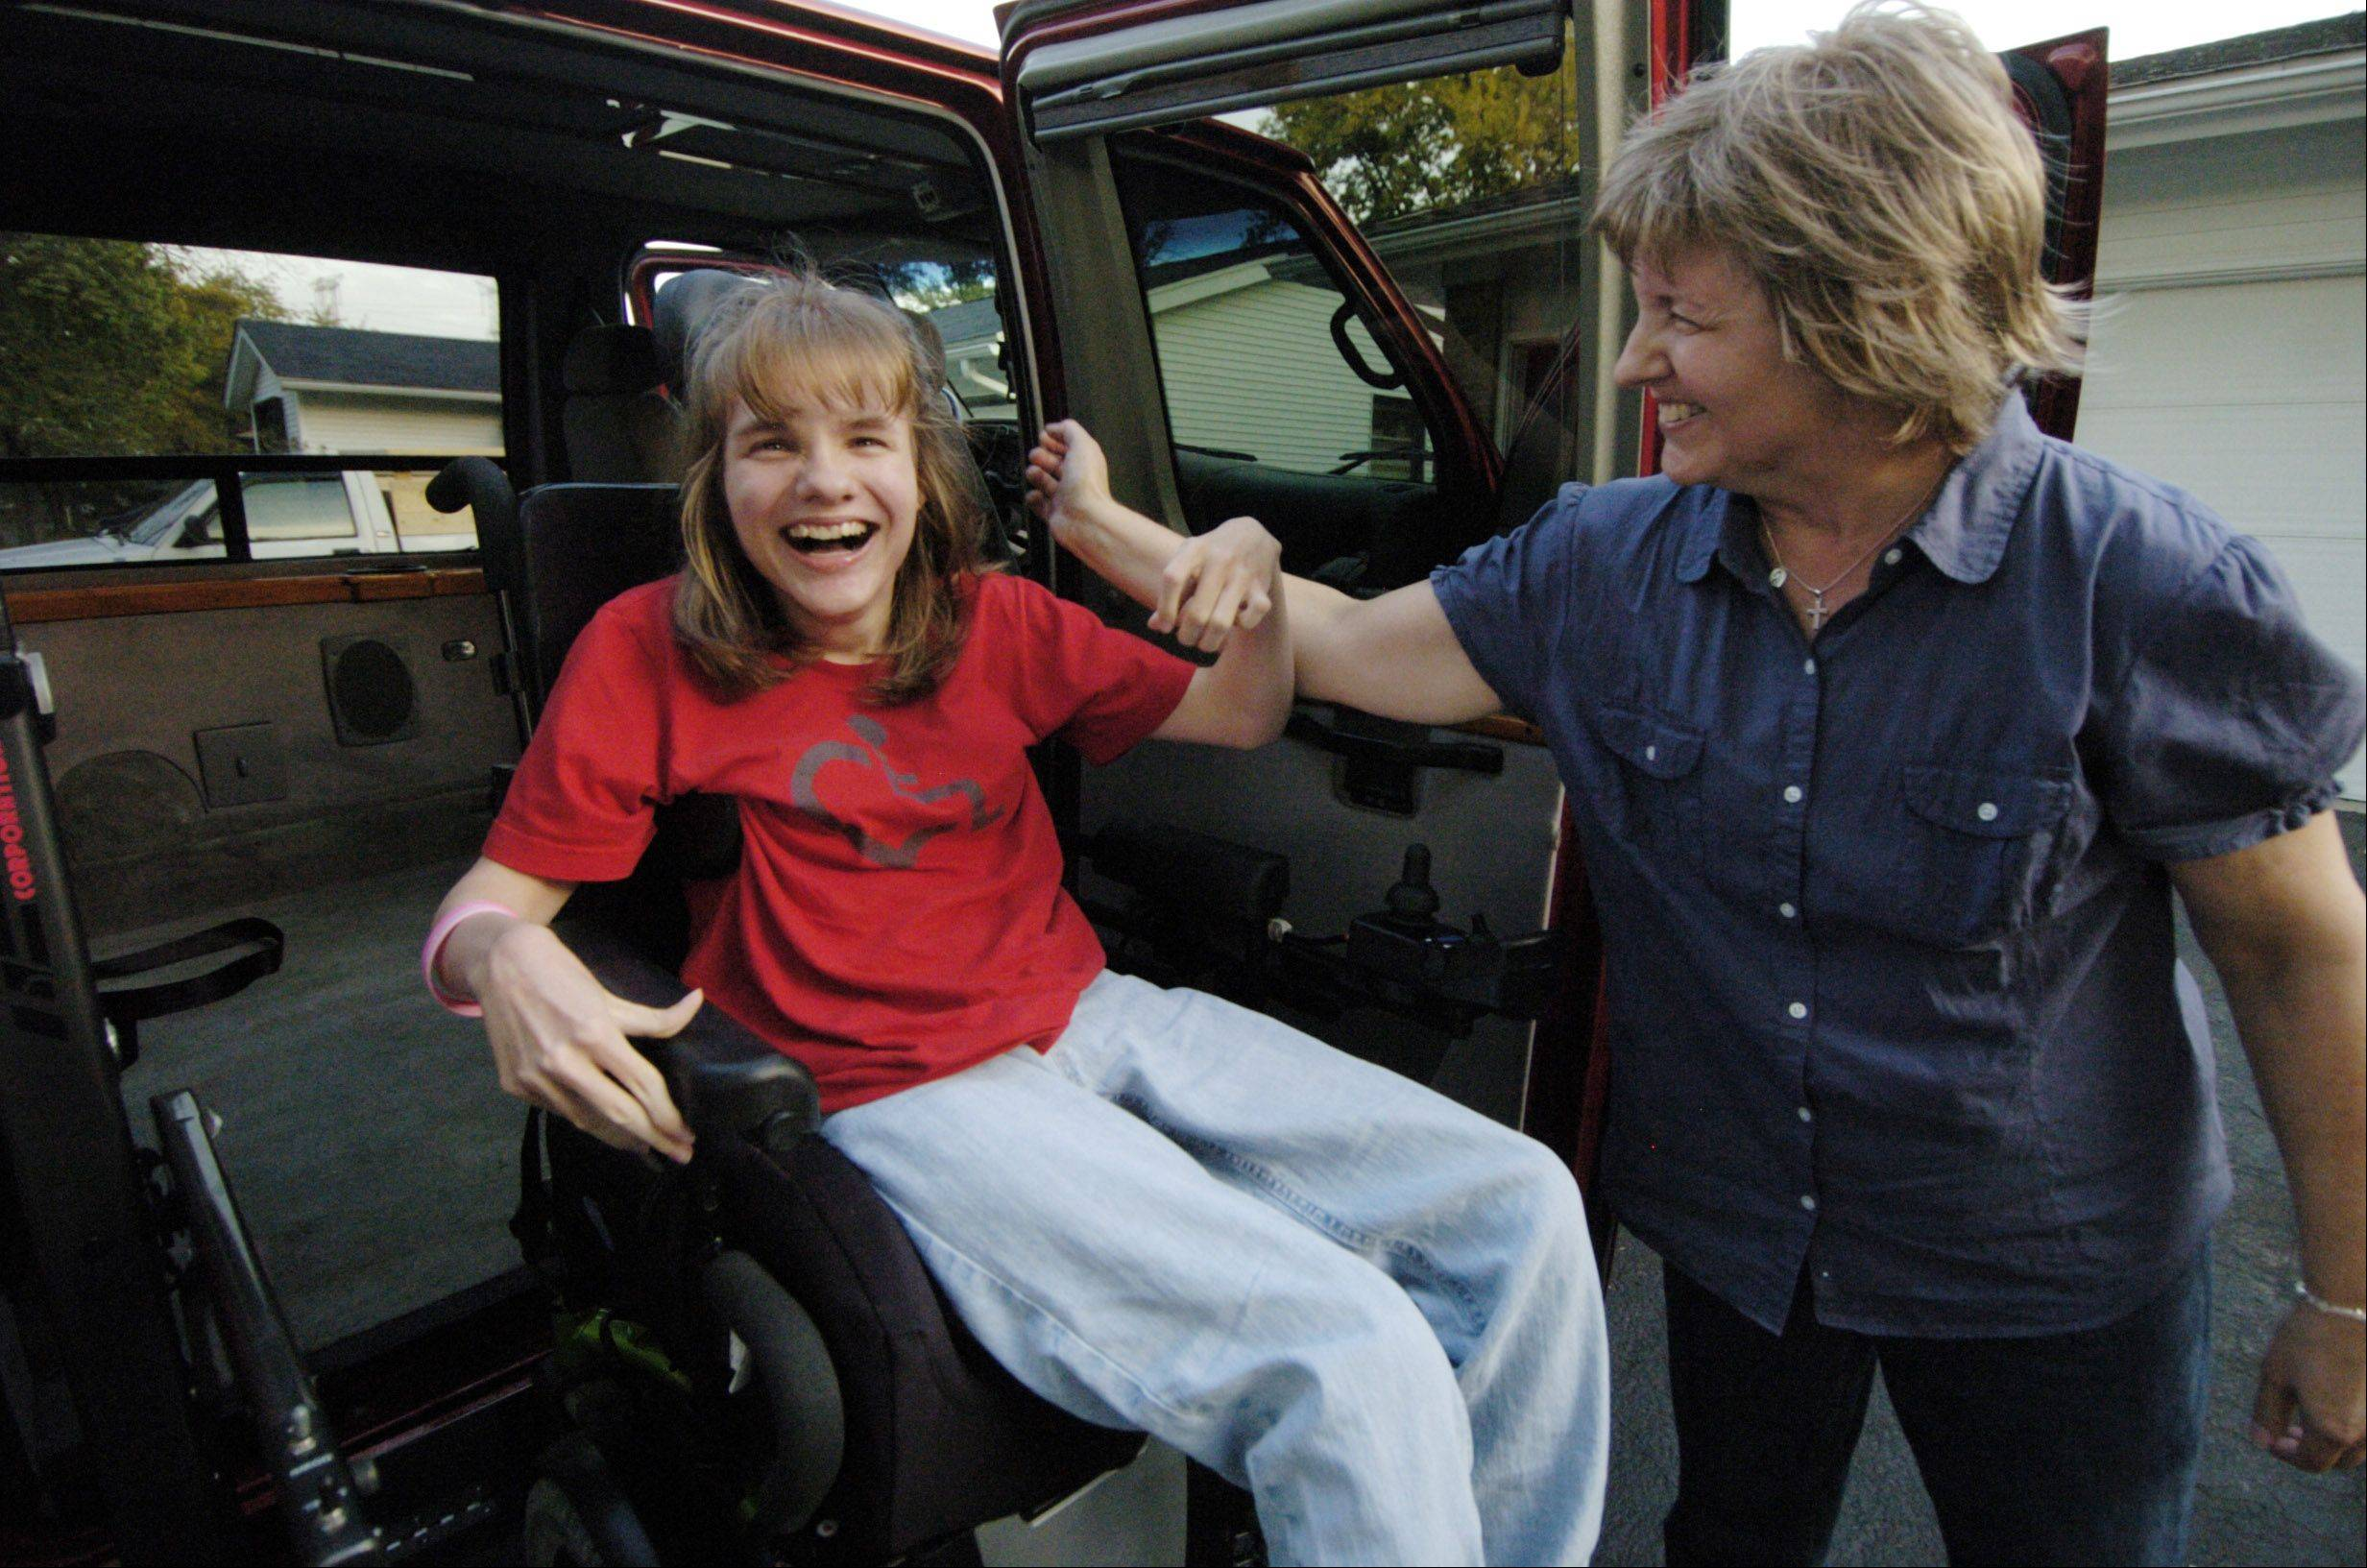 Meredith Evans smiles as her mom, Joan helps guide her into their family's new handicapped-accessible van, which was donated by Chris and Gail Margarites of Hawthorn Woods.